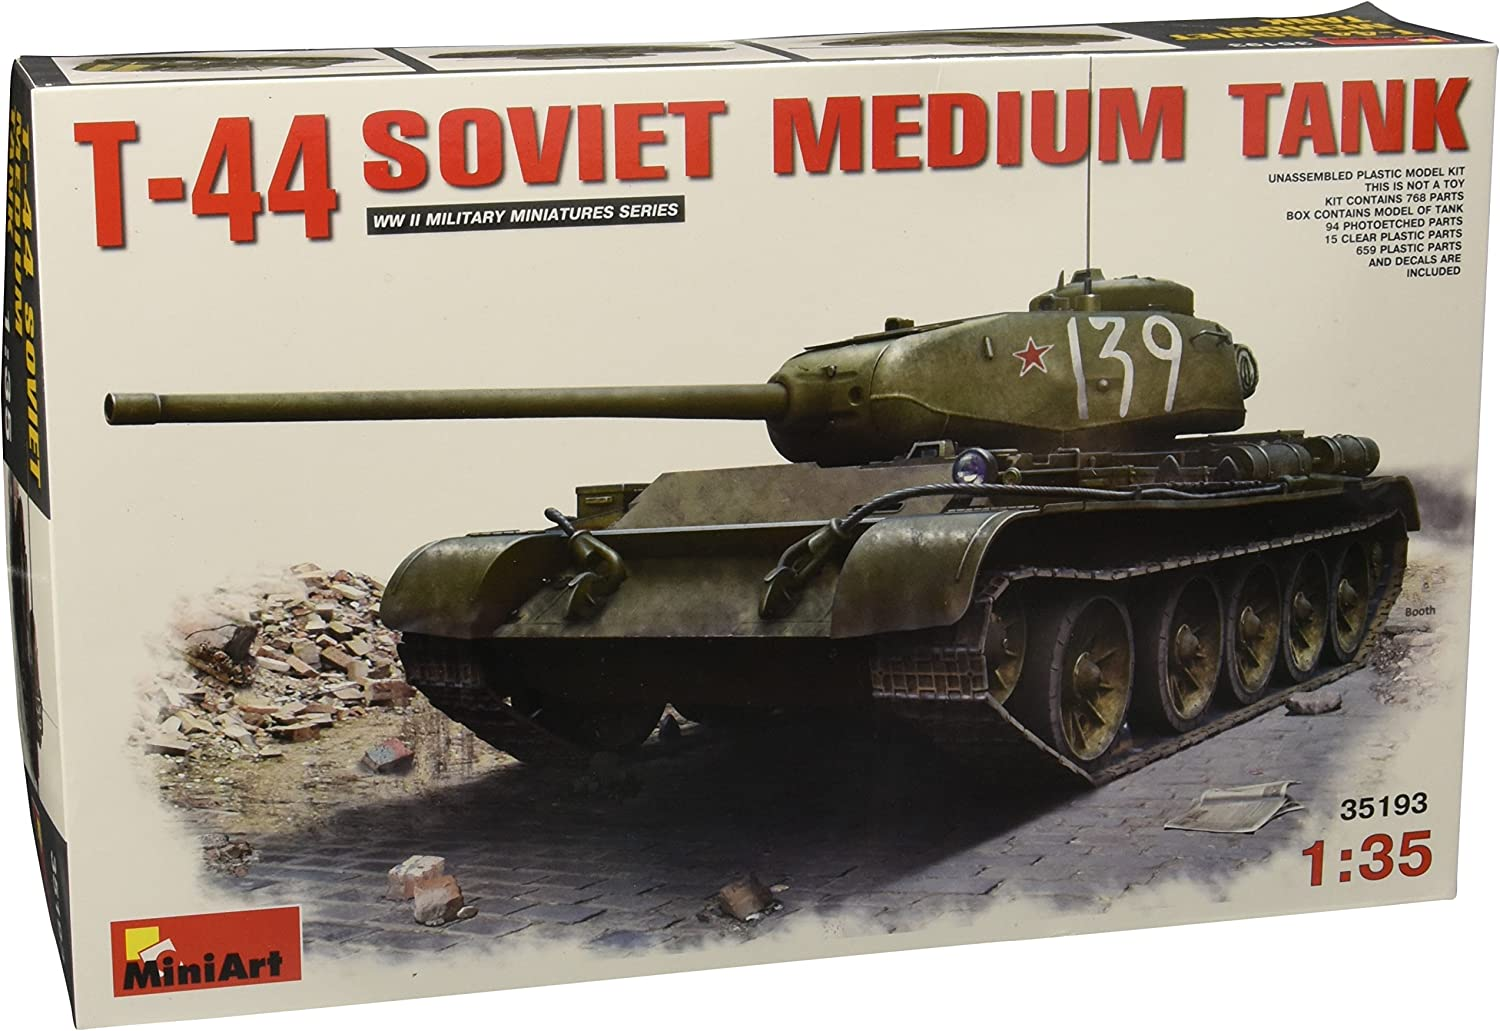 MIN35193 Various Kit, Model Tank Medium Soviet 44 T